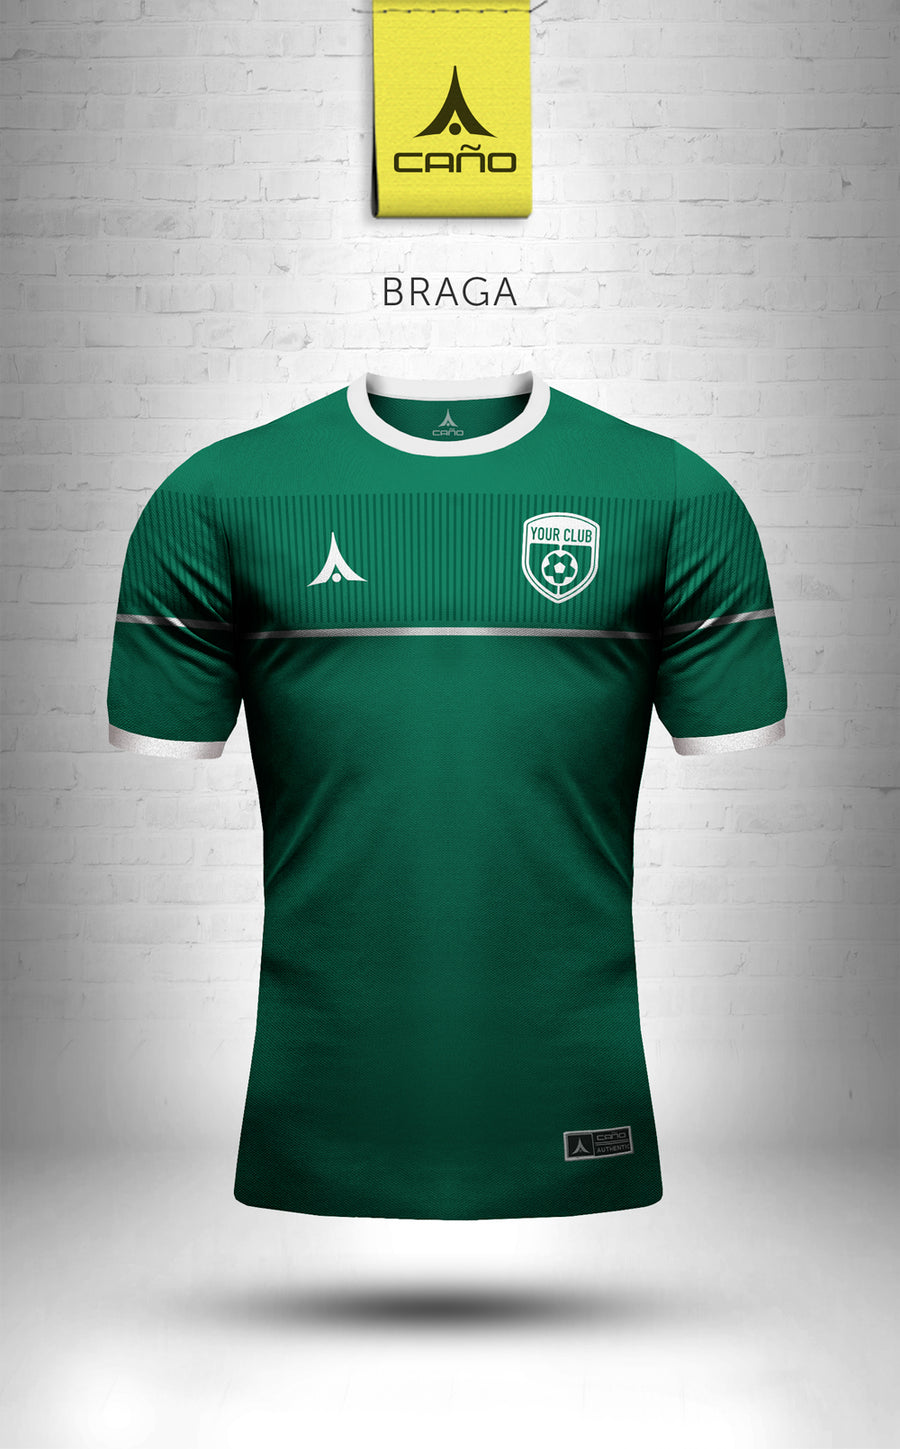 Braga in green/white